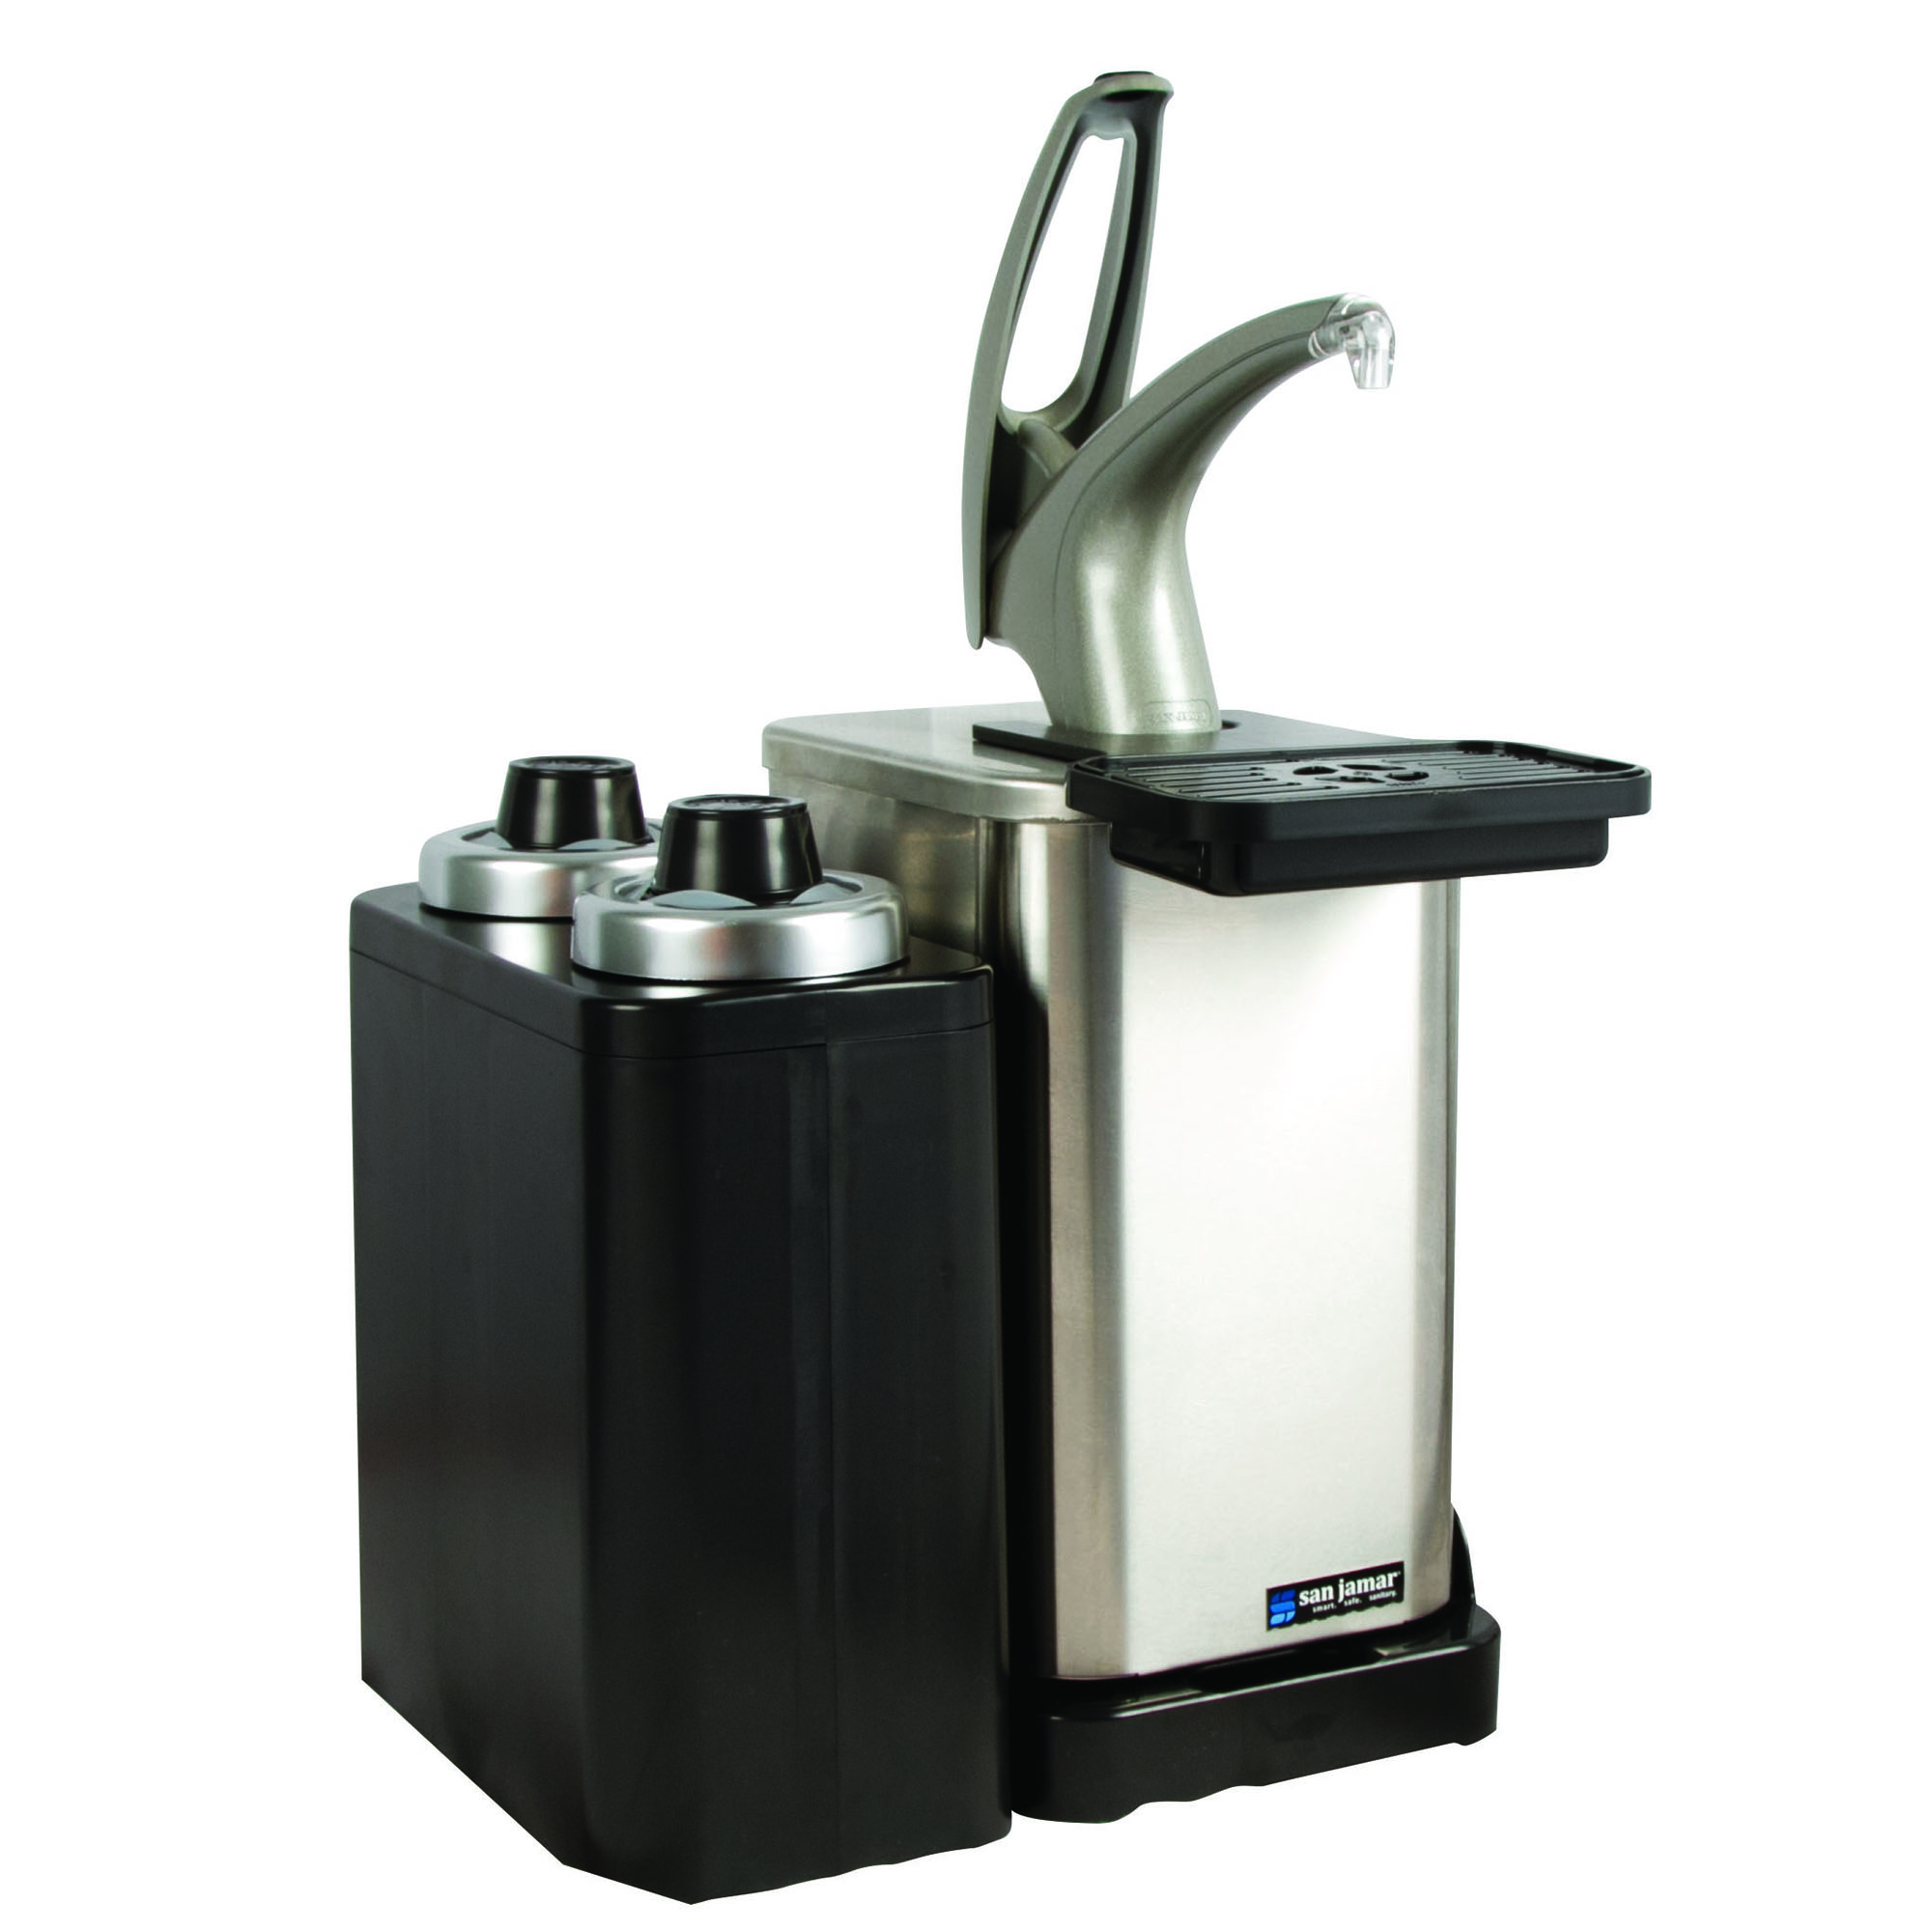 San Jamar MODP4900CC condiment dispenser pump-style